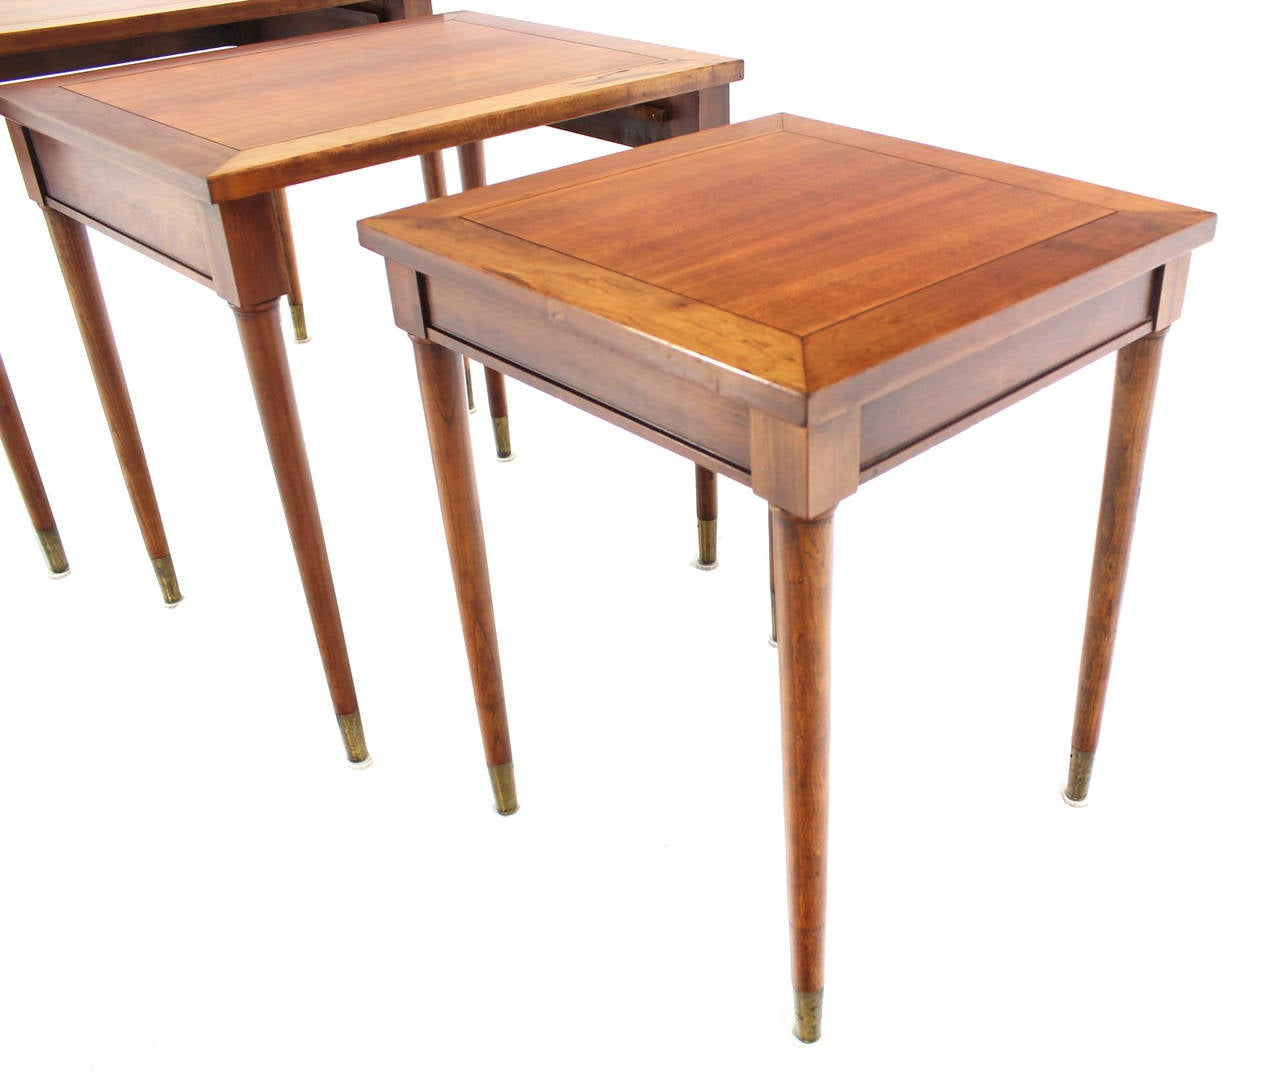 Set of Three Mid-Century Modern Walnut Nesting Tables In Excellent Condition For Sale In Elmwood Park, NJ